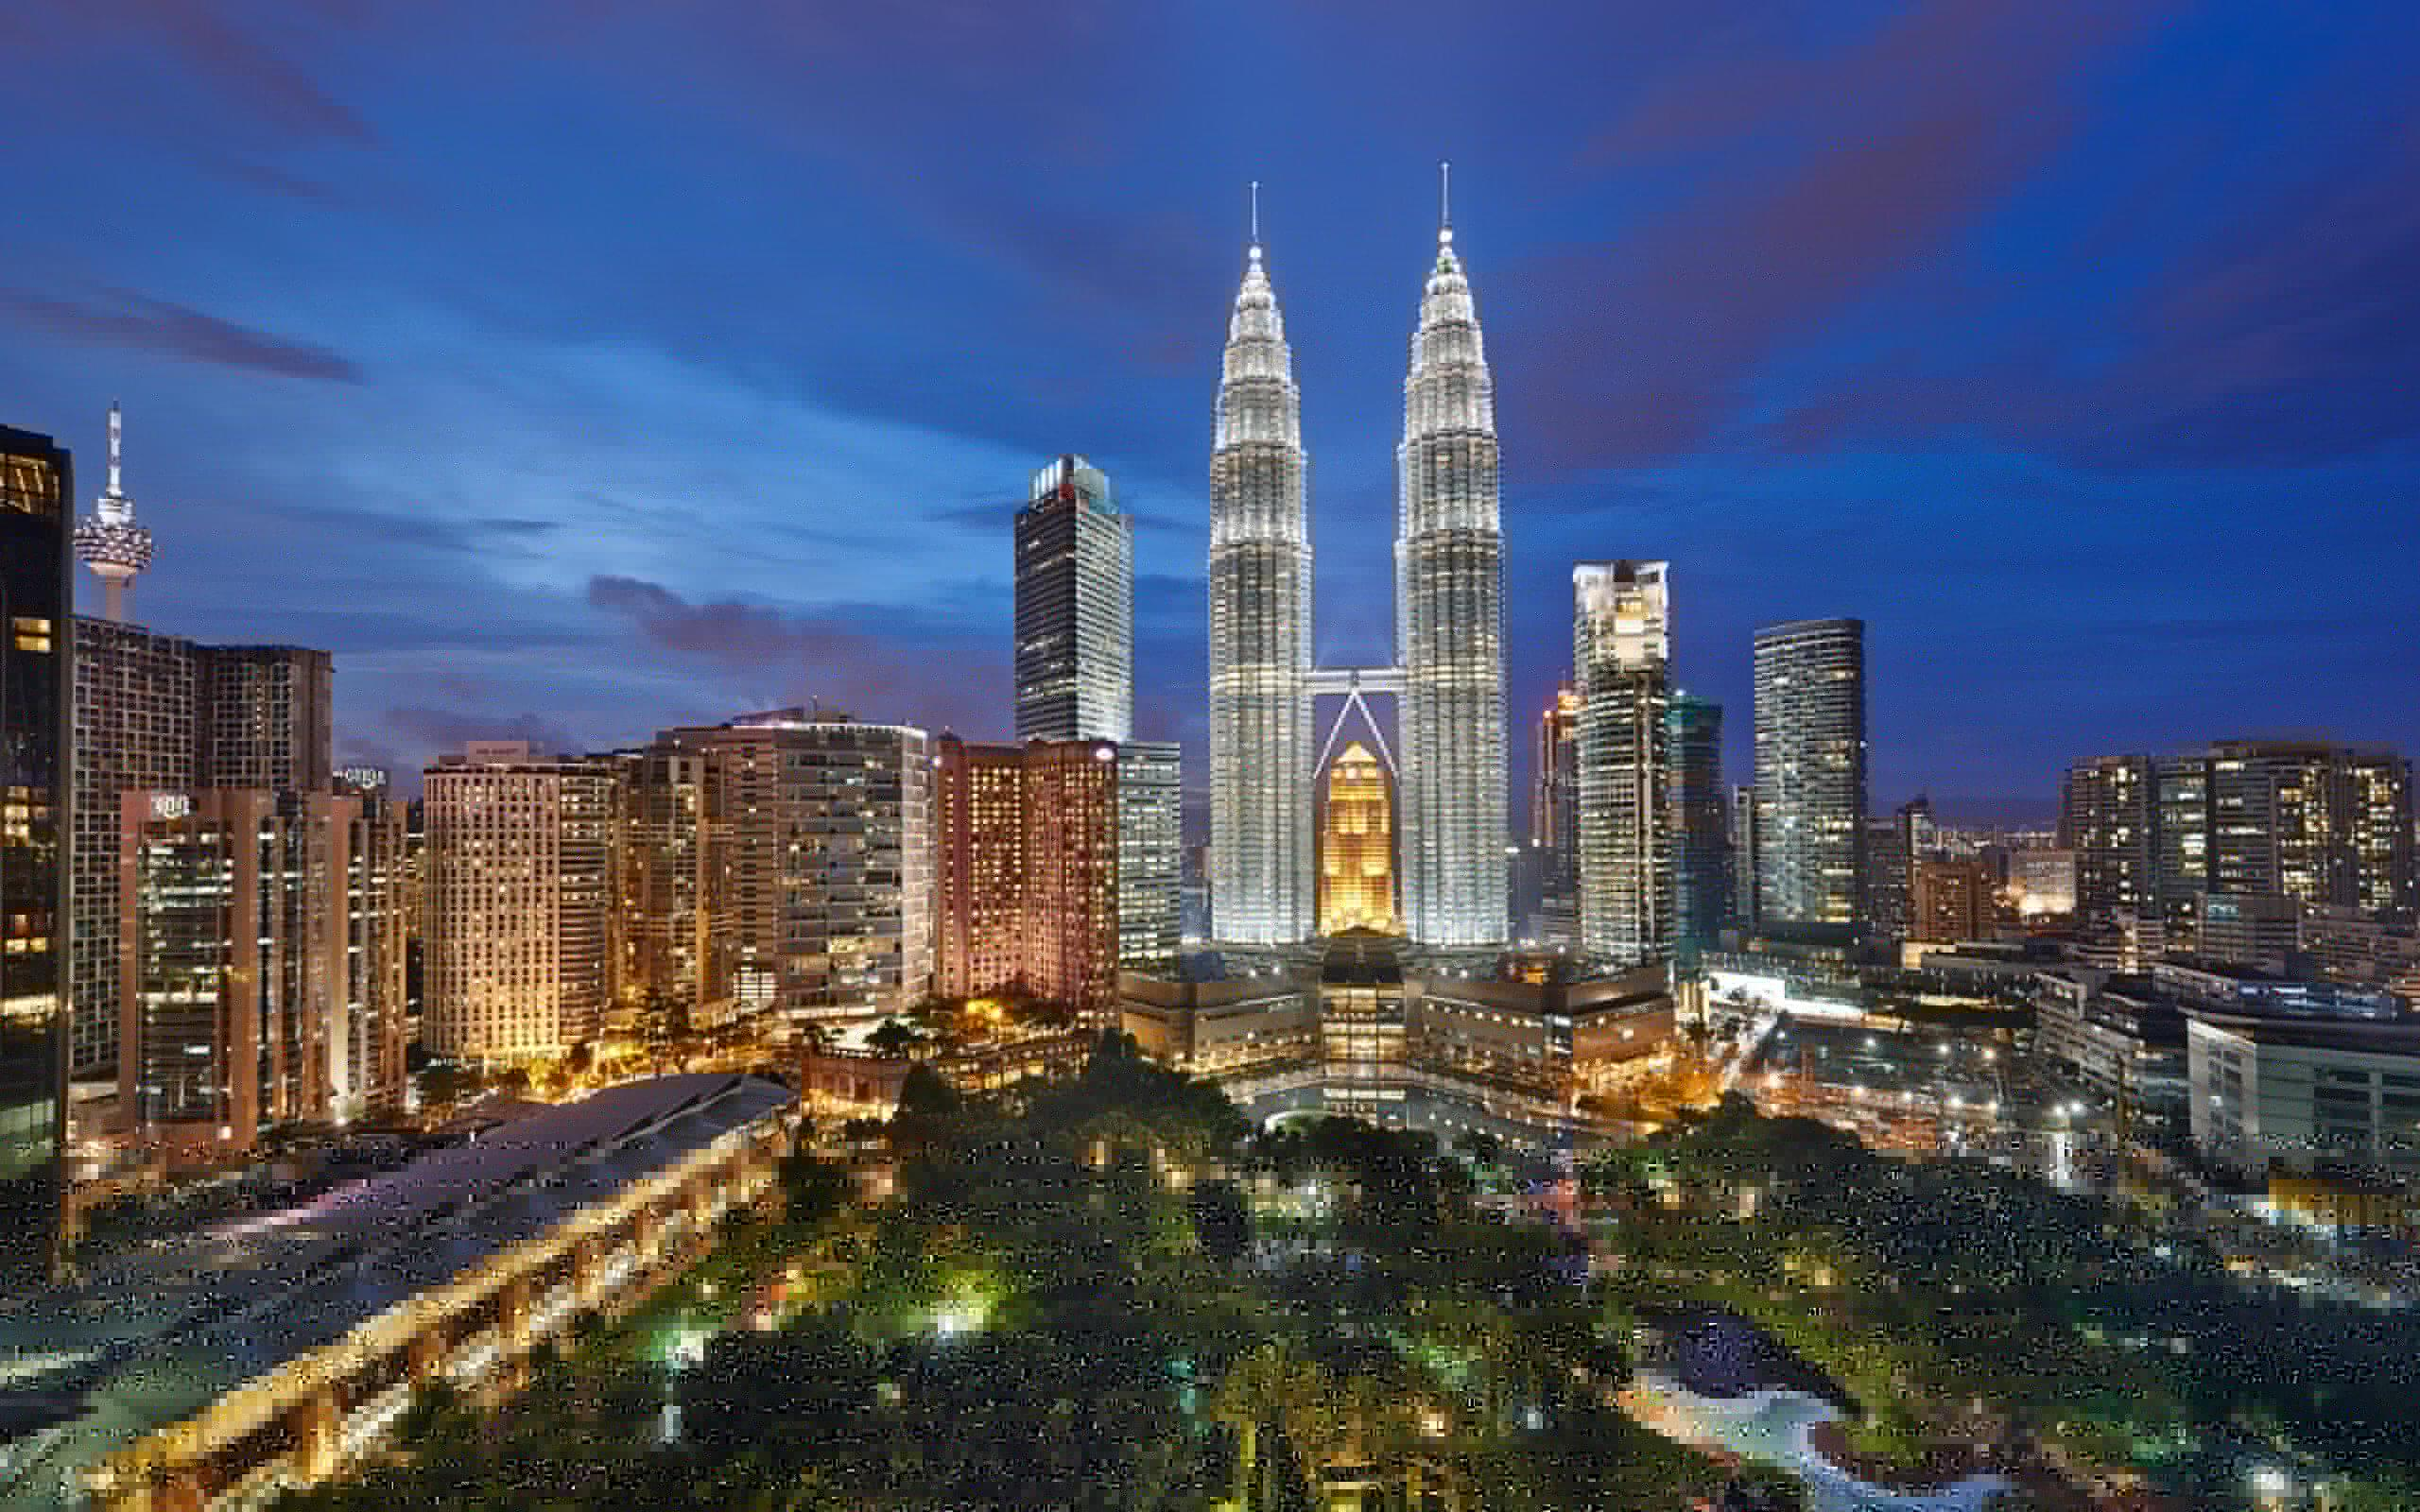 Malaysia 4K wallpapers for your desktop or mobile screen ...